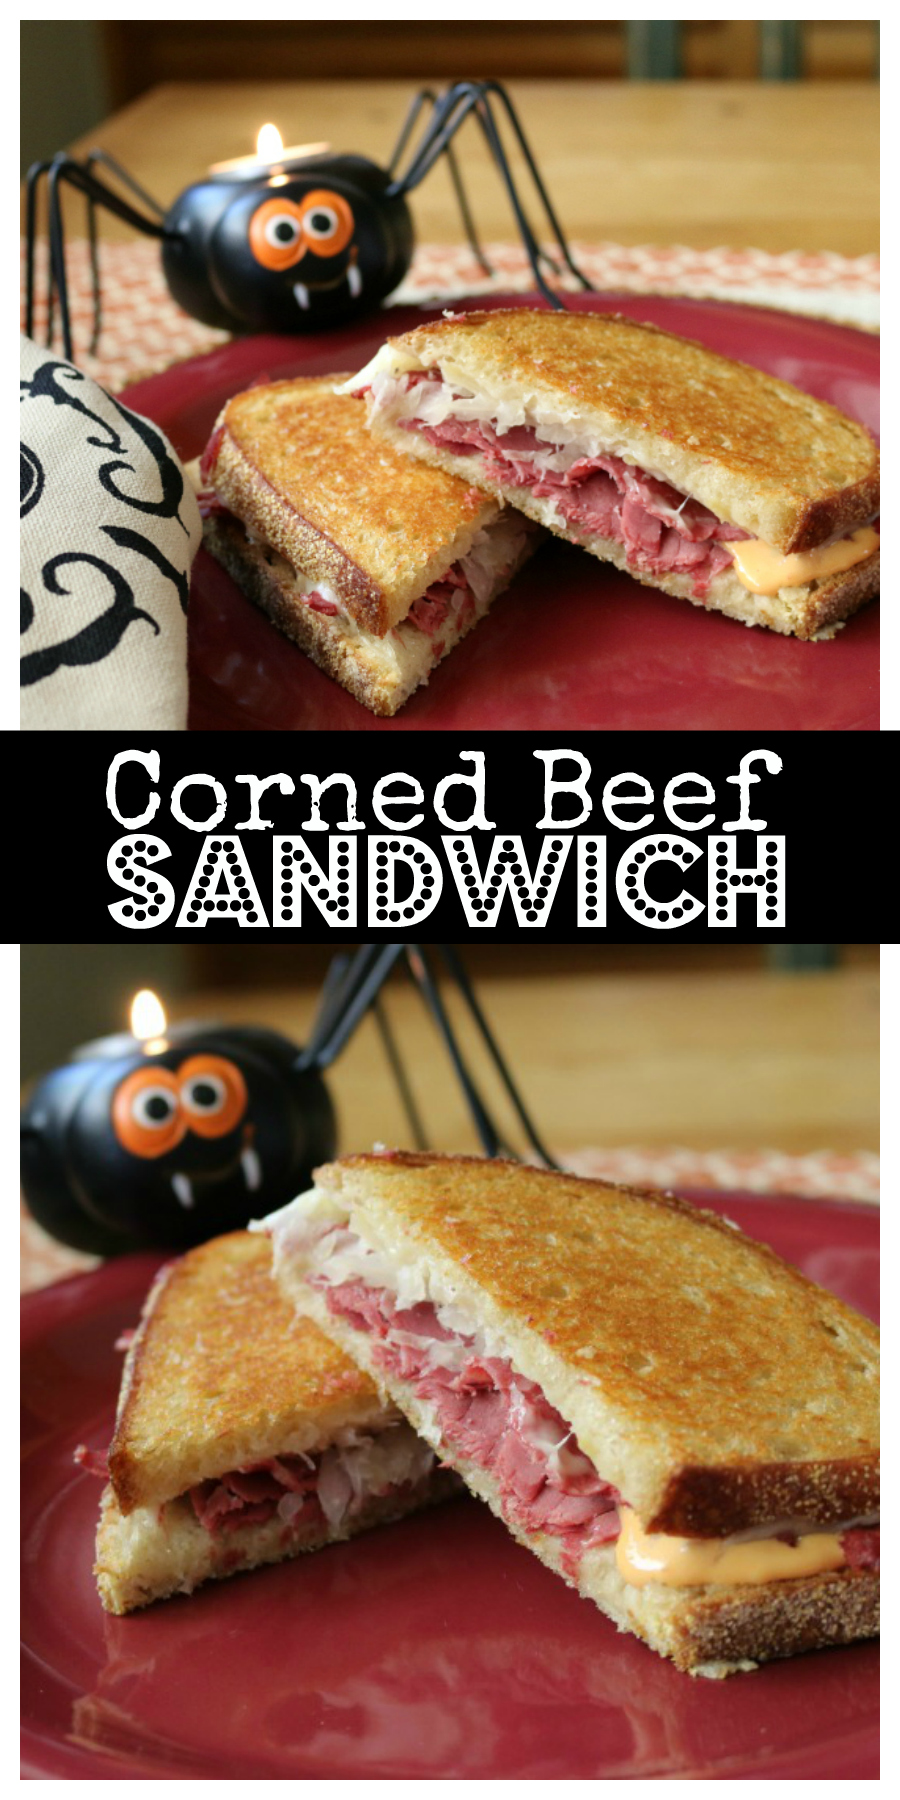 The Ultimate Corned Beef Sandwich perfect anytime - and great for Halloween!  CeceliasGoodStuff.com | Good Food for Good People